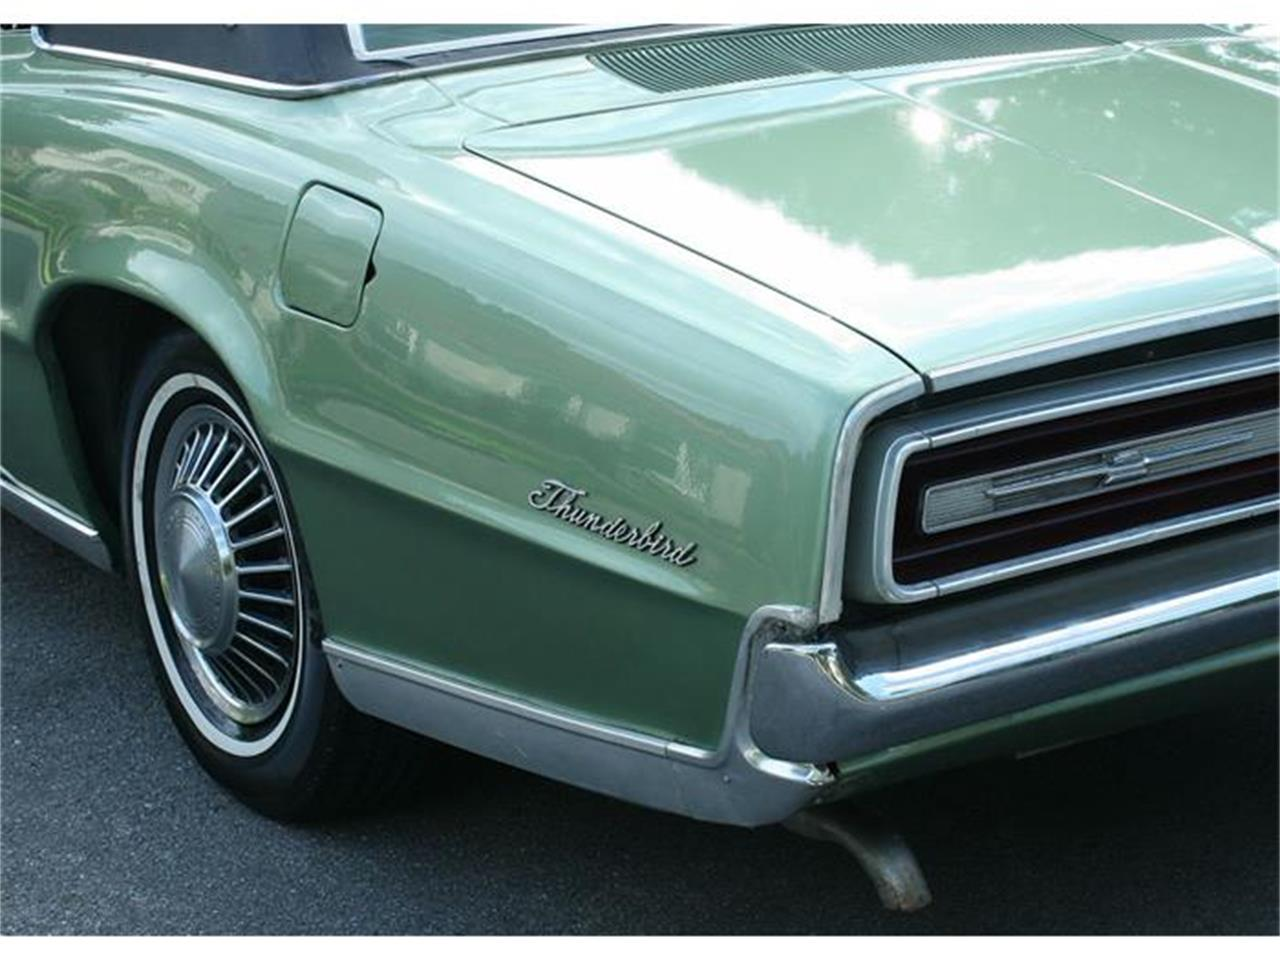 Large Picture of Classic 1967 Ford Thunderbird located in Florida - $18,500.00 - ITN1